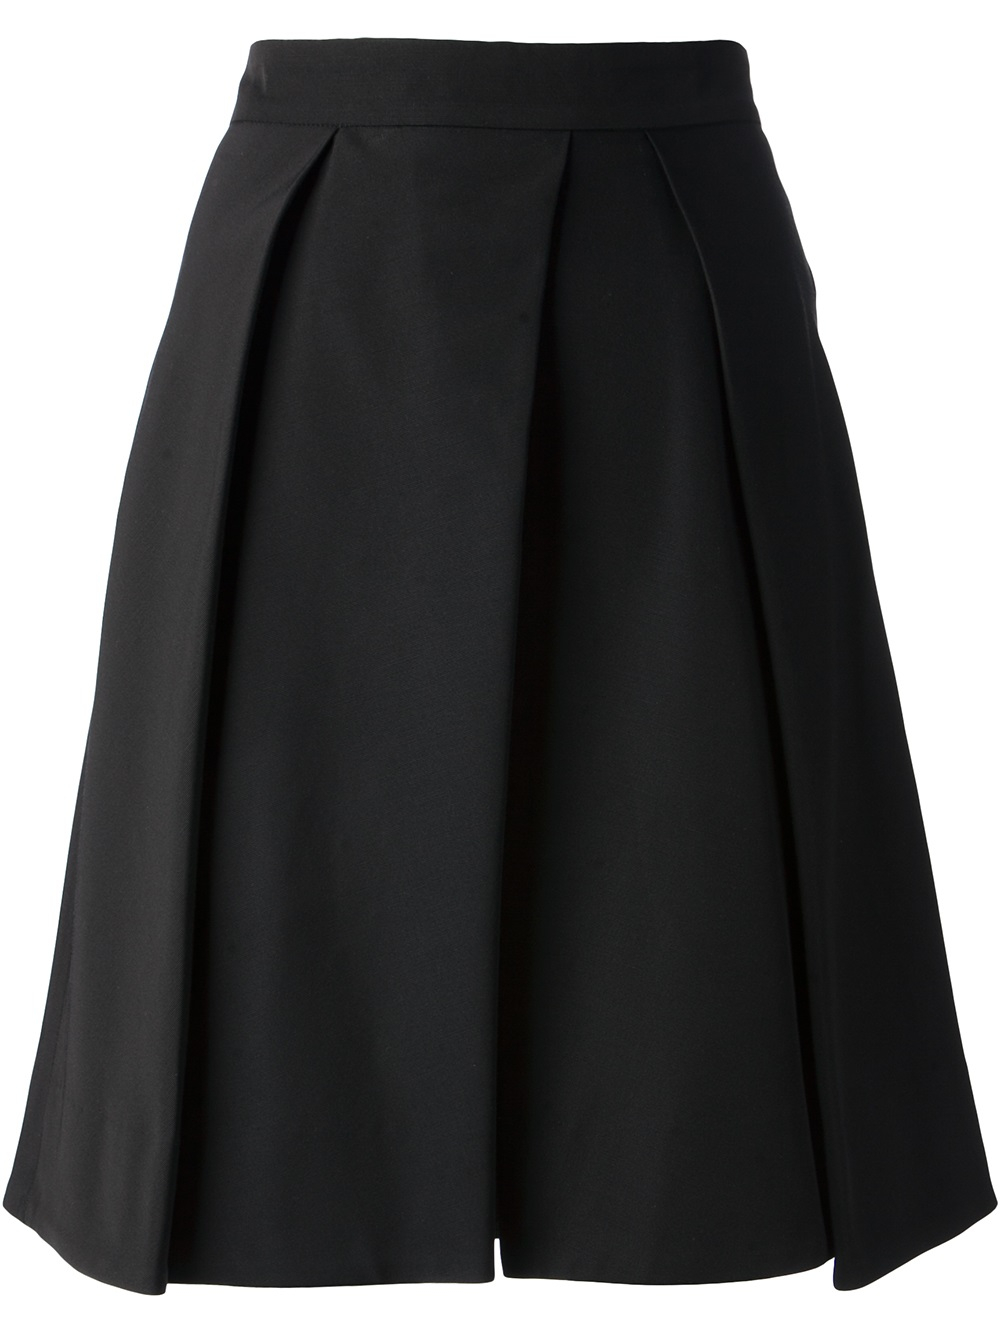 Mcq Pleated A-line Skirt in Black | Lyst